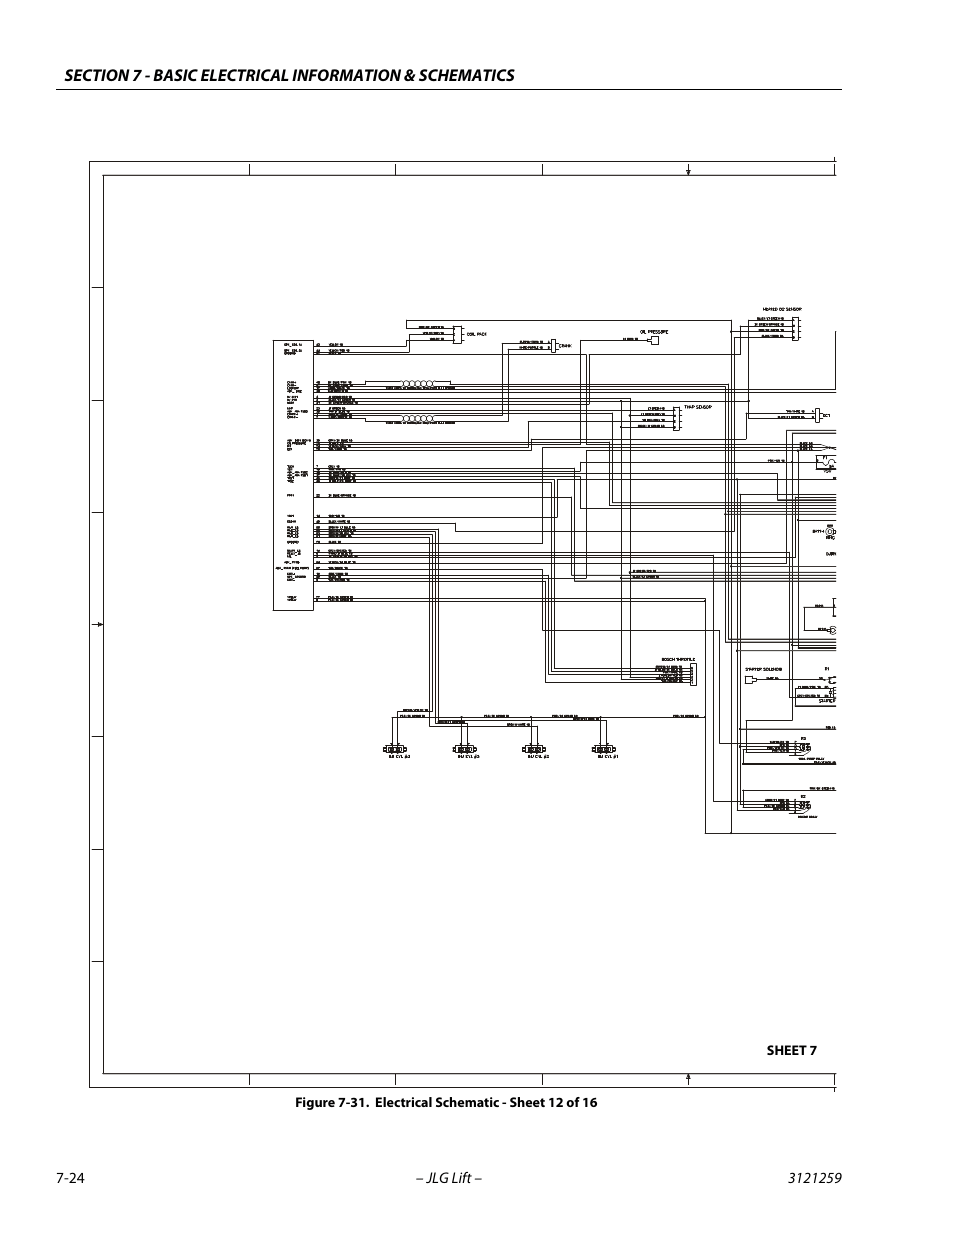 hight resolution of electrical schematic sheet 12 of 16 24 gm engine harness jlgelectrical schematic sheet 12 of